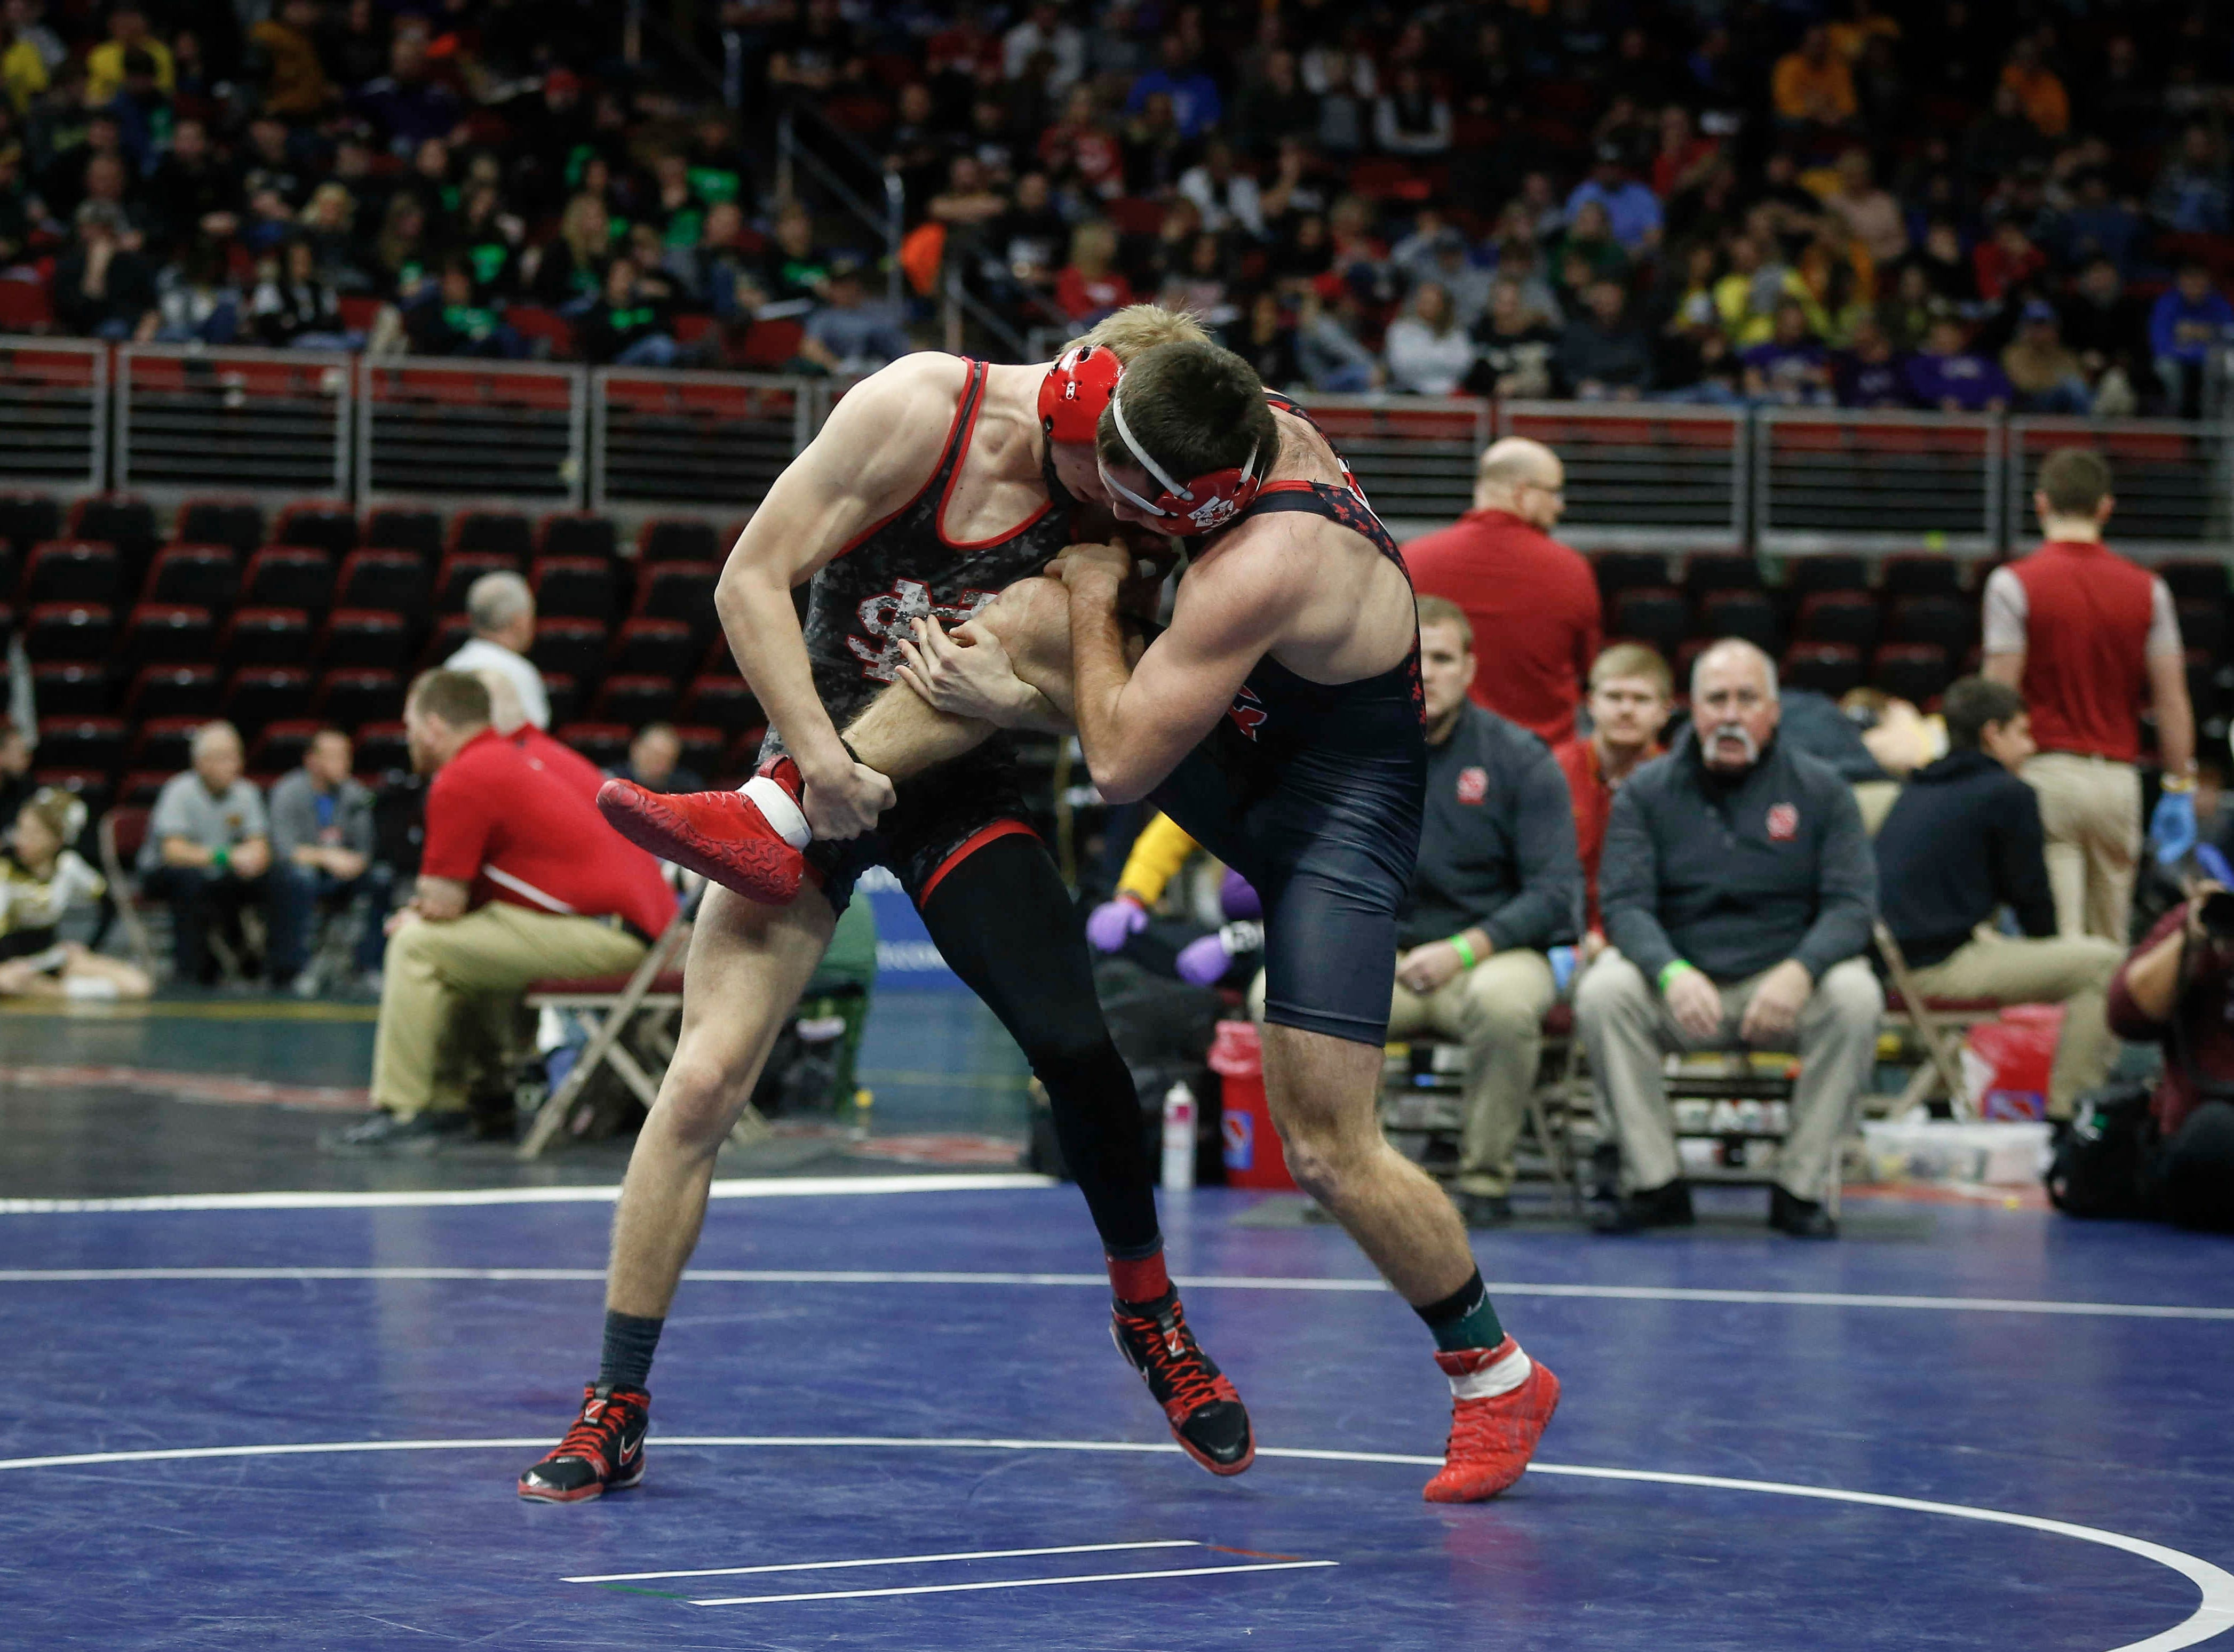 Iowa City High senior Kyle Hefley, right, is taken down by North Scott junior Jake Matthaidess in their match at 152 pounds during the state wrestling quarterfinals on Friday, Feb. 15, 2019, at Wells Fargo Arena in Des Moines.